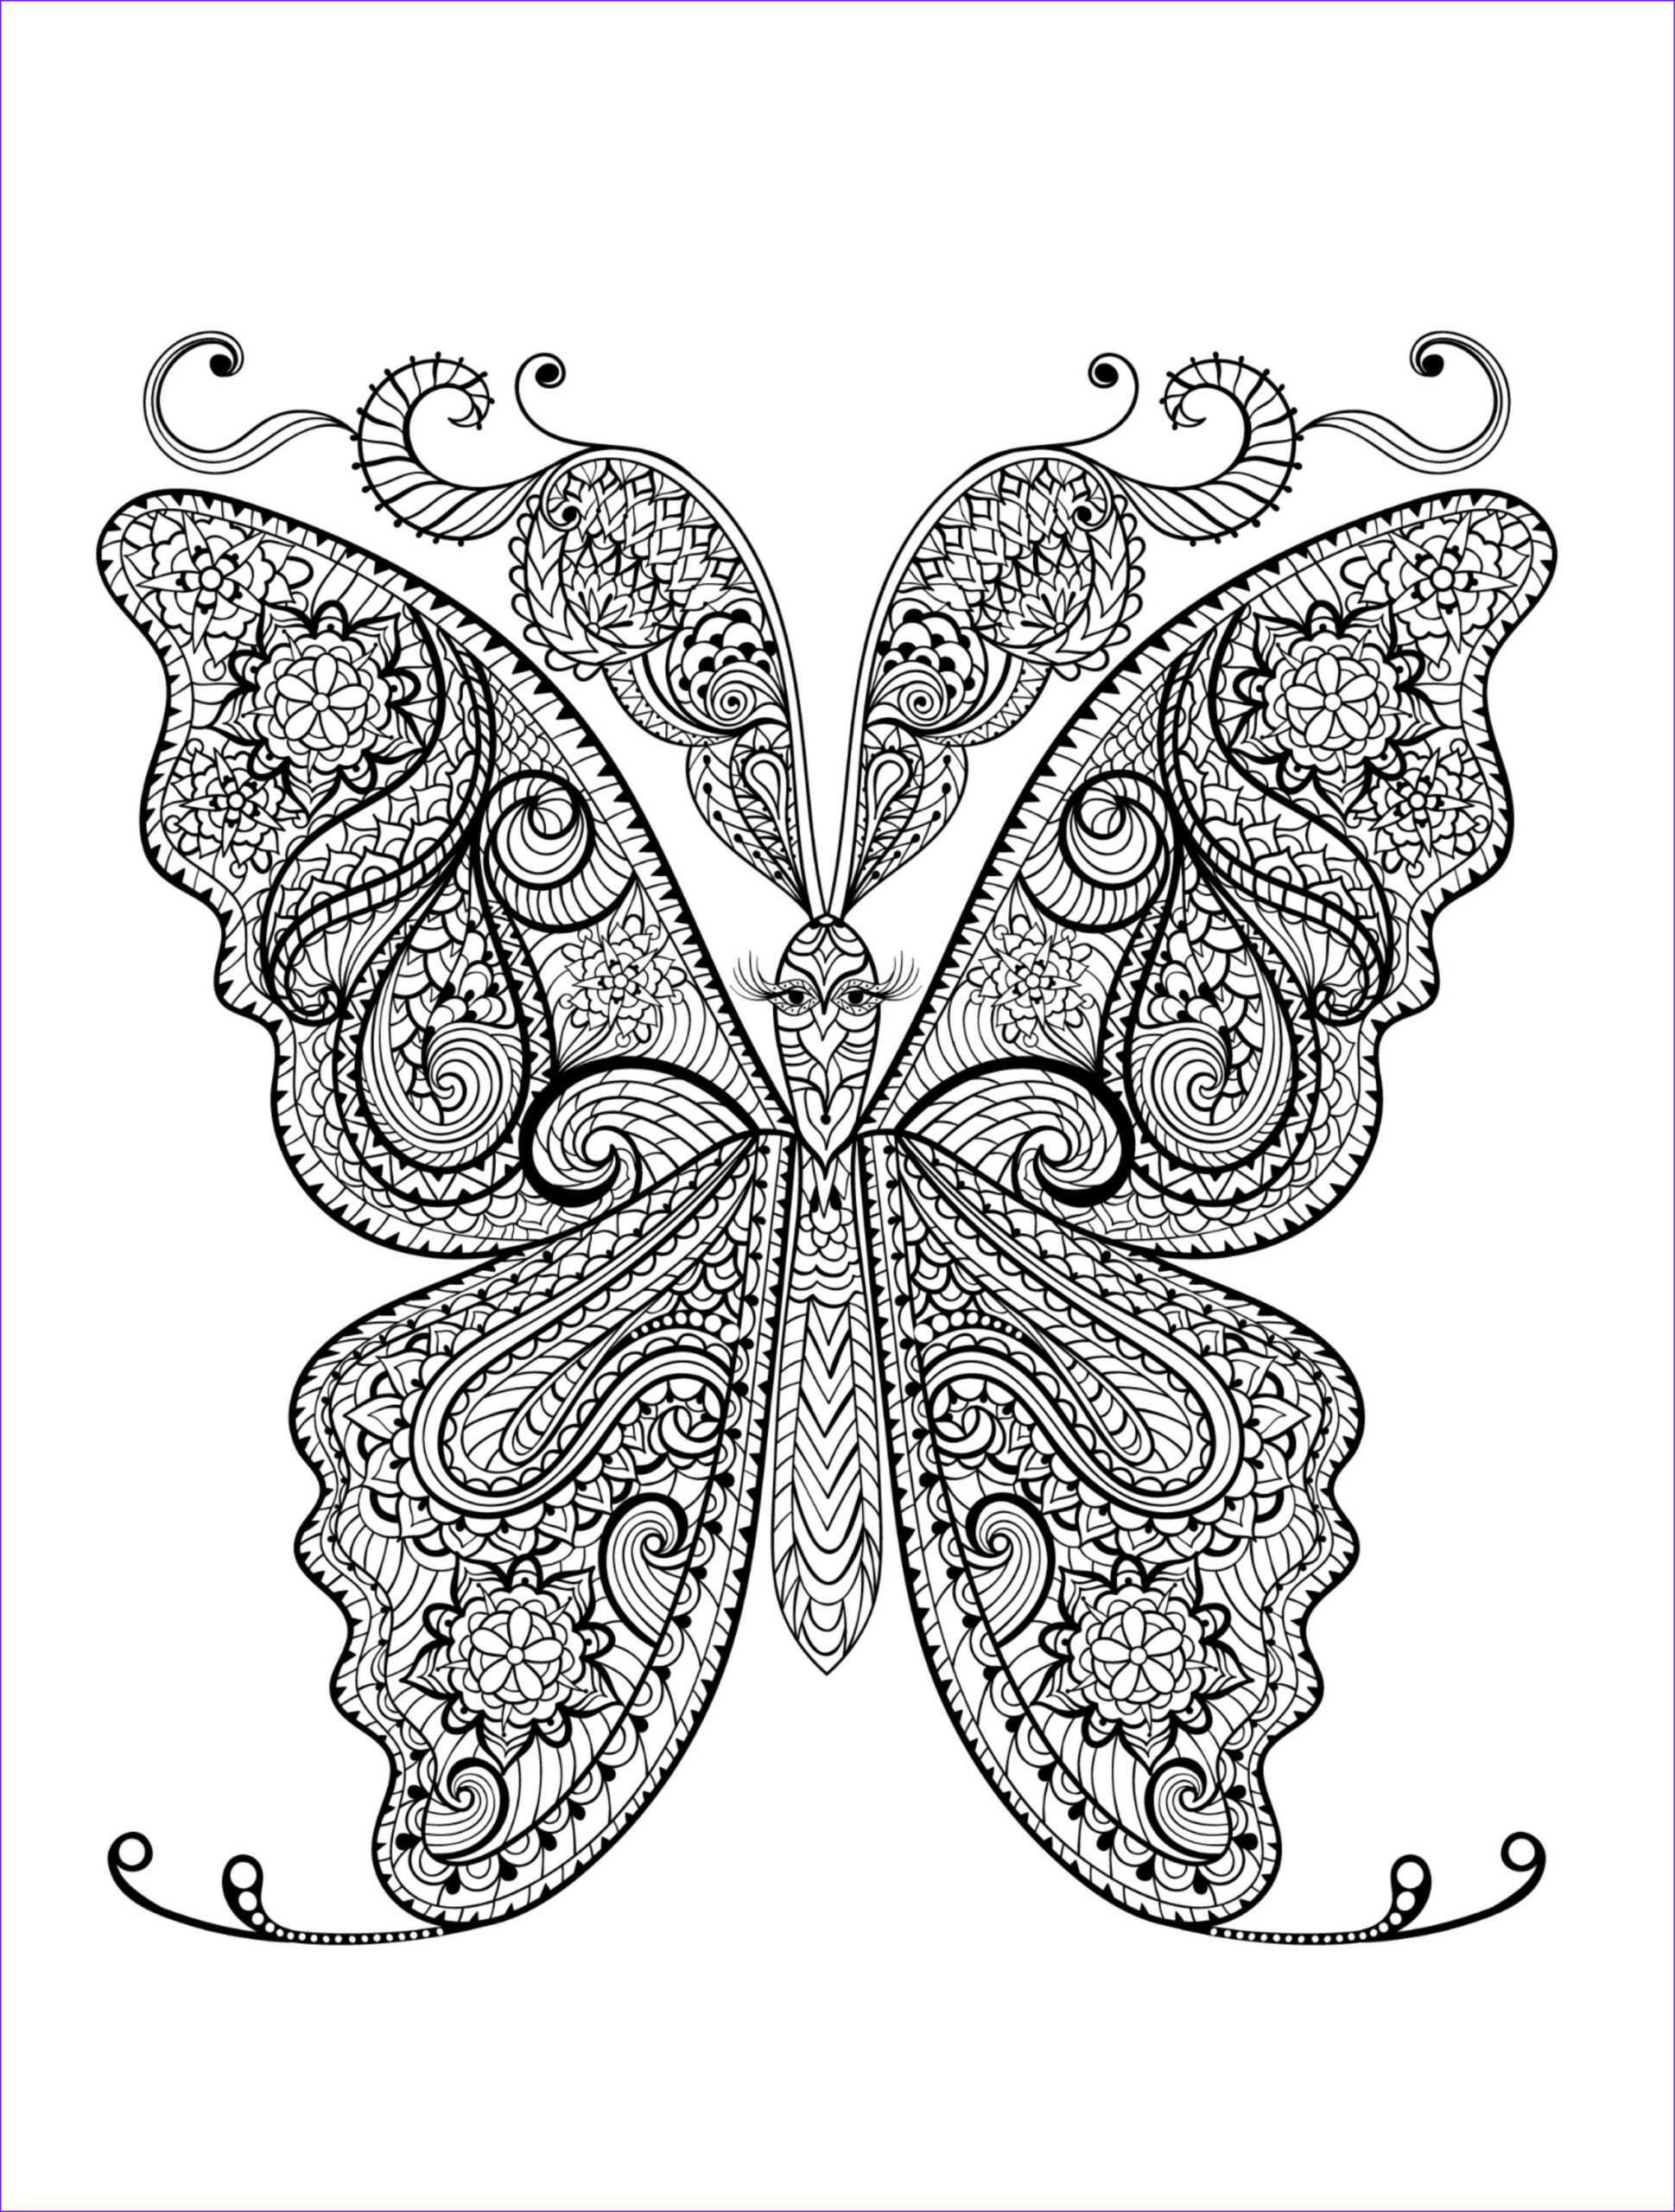 Free Printable Animal Coloring Pages Cool Images Animal Coloring Pages for Adults Best Coloring Pages for